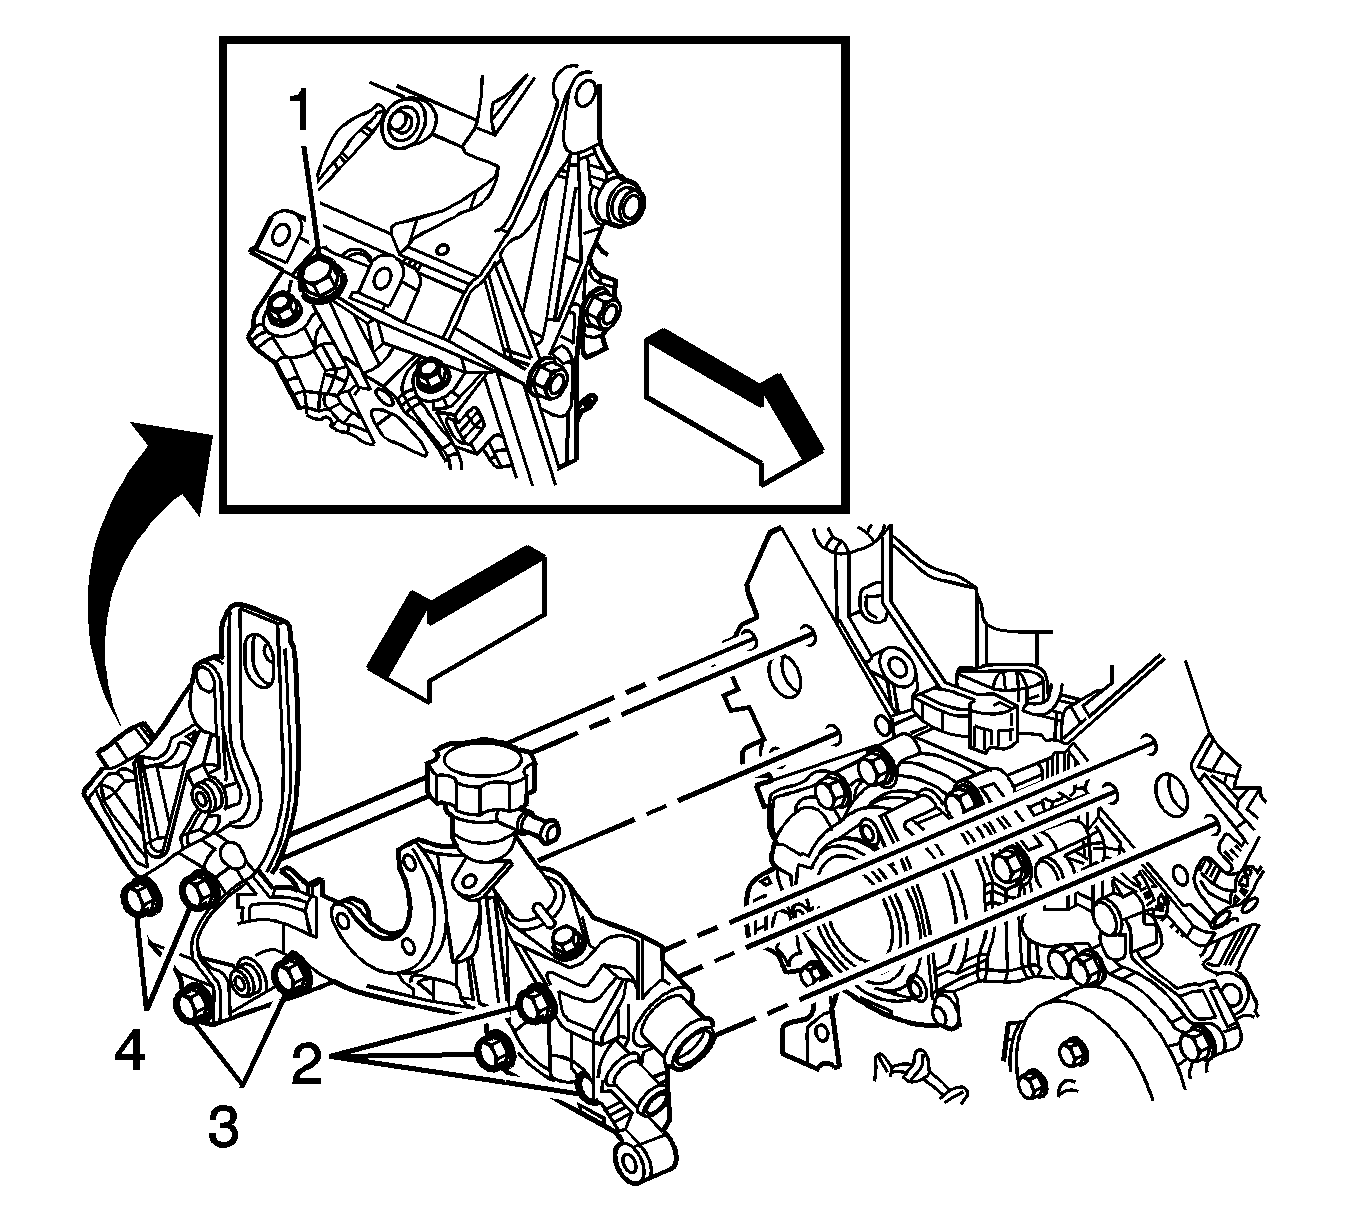 Saturn Vue 3 6 2012 Specs And Images further Saturn Ion 2005 2007 Fuse Box Diagram also 86qs8 Saturn Aura Xr Hello Saturn 2007 Aura Xr Fan likewise 2006 Saturn Ion Wiring Diagram further P 0996b43f80cb1031. on 2007 saturn aura bcm diagram